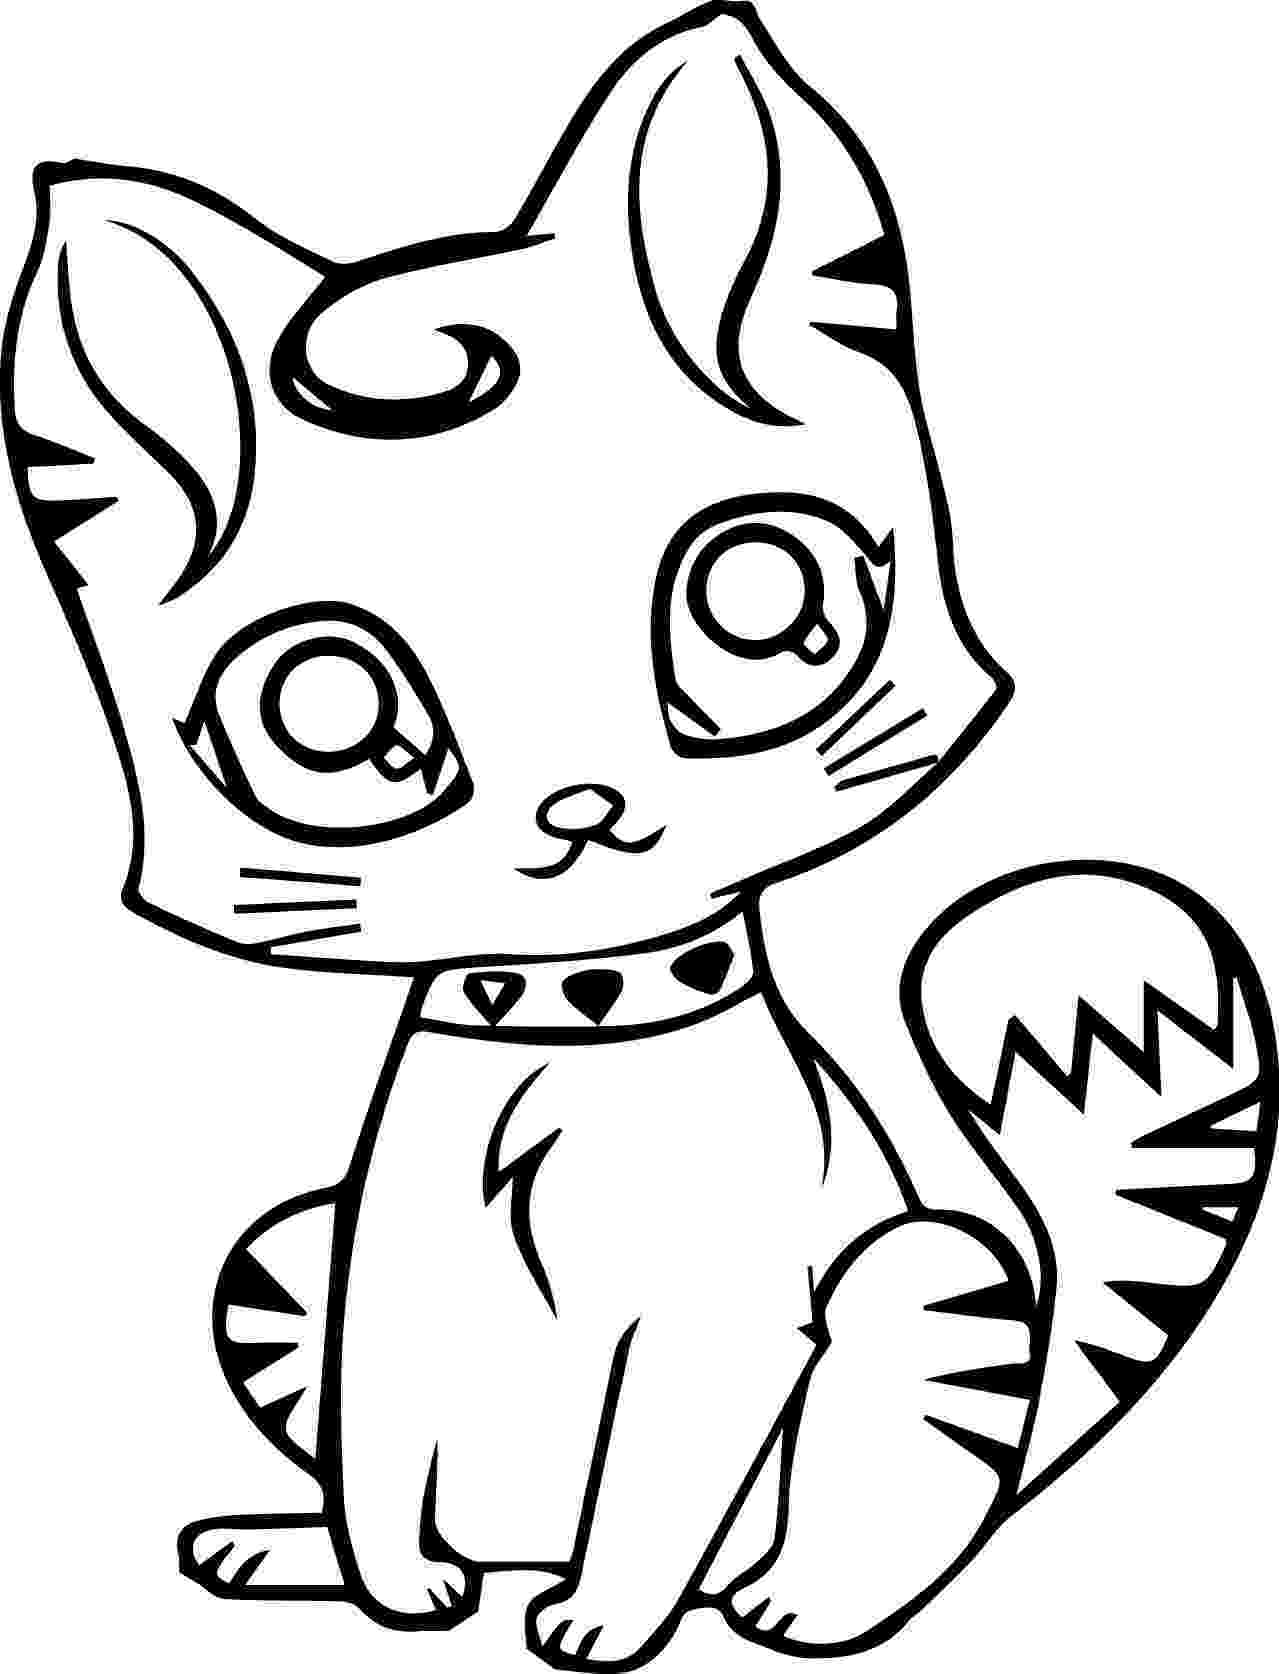 free kitten coloring pages free printable kitten coloring pages for kids best kitten free coloring pages